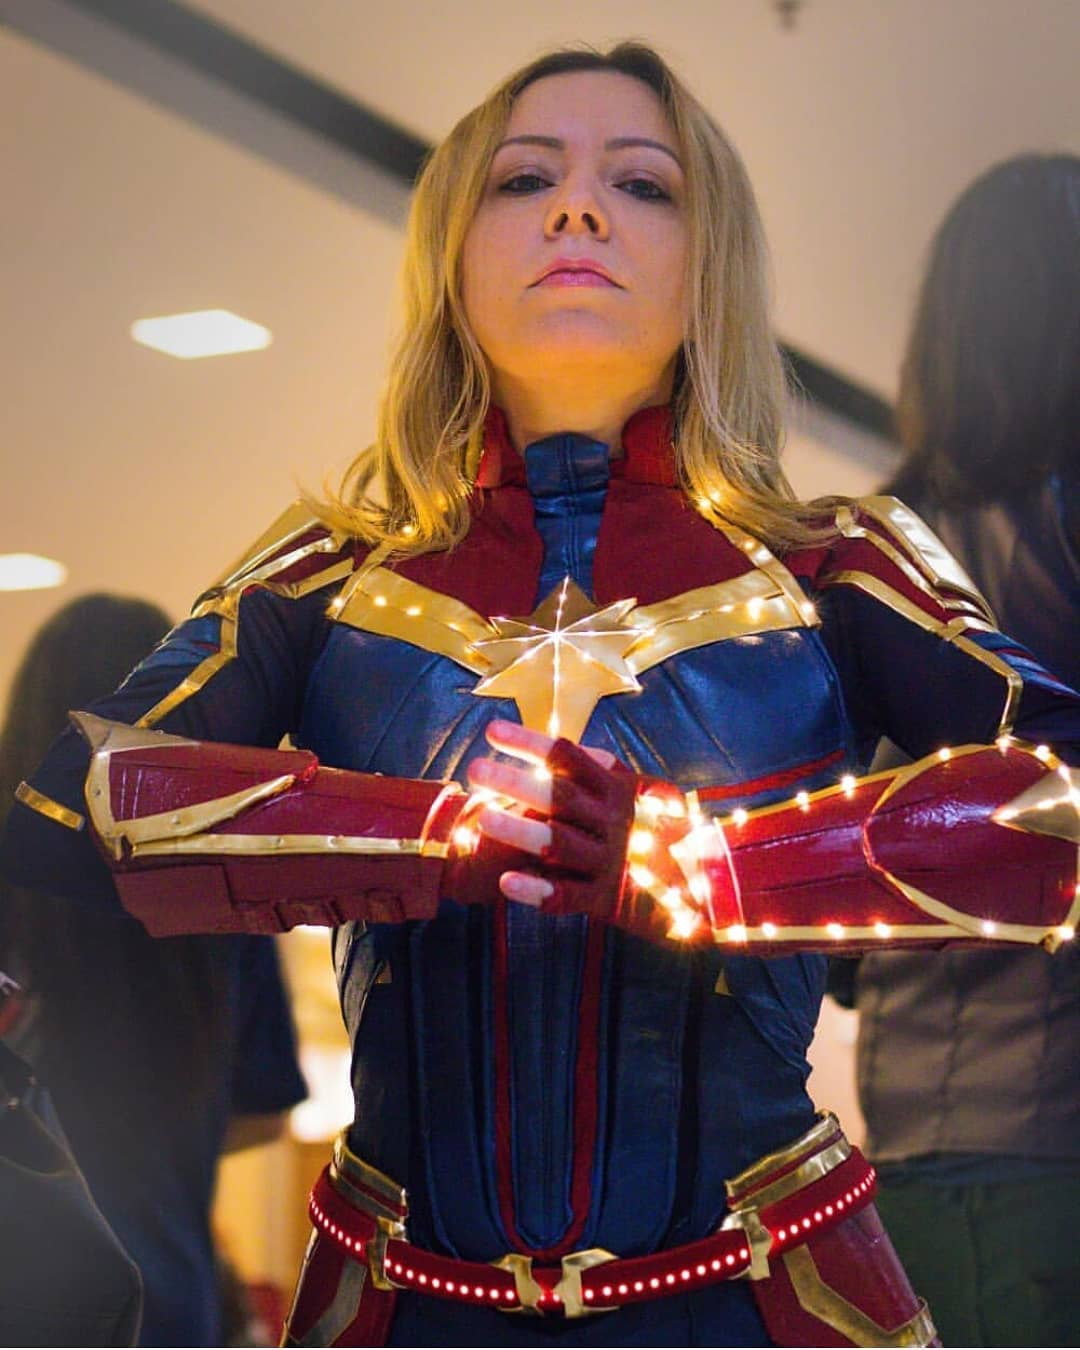 Free Comic Book Day Etiquette: Captain Marvel Cosplay Free Comic Book Day 2019 (4 By